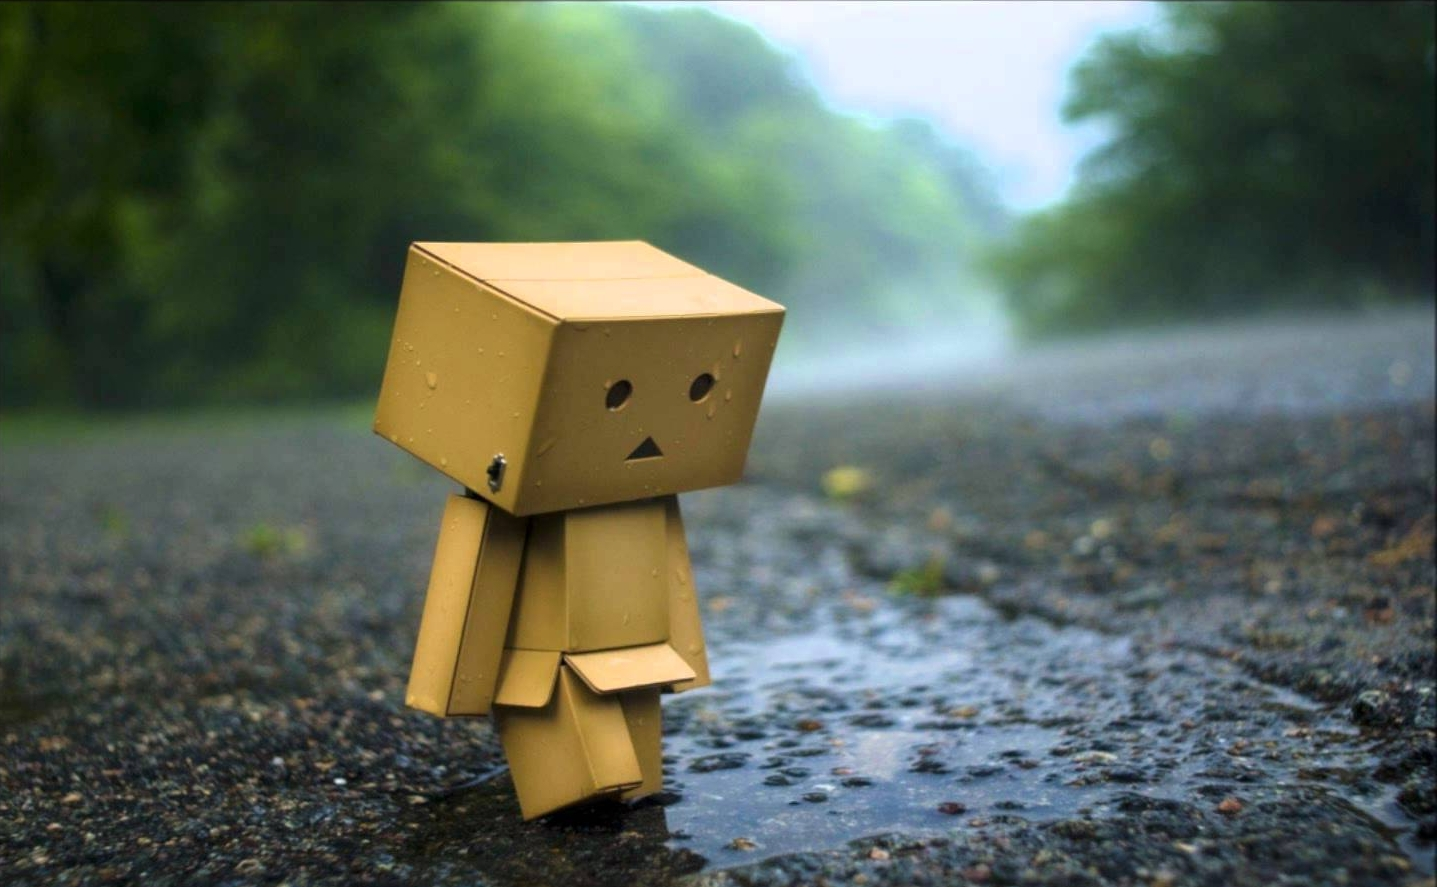 Does this sad robot make you feel better? Yeah, we thought so.